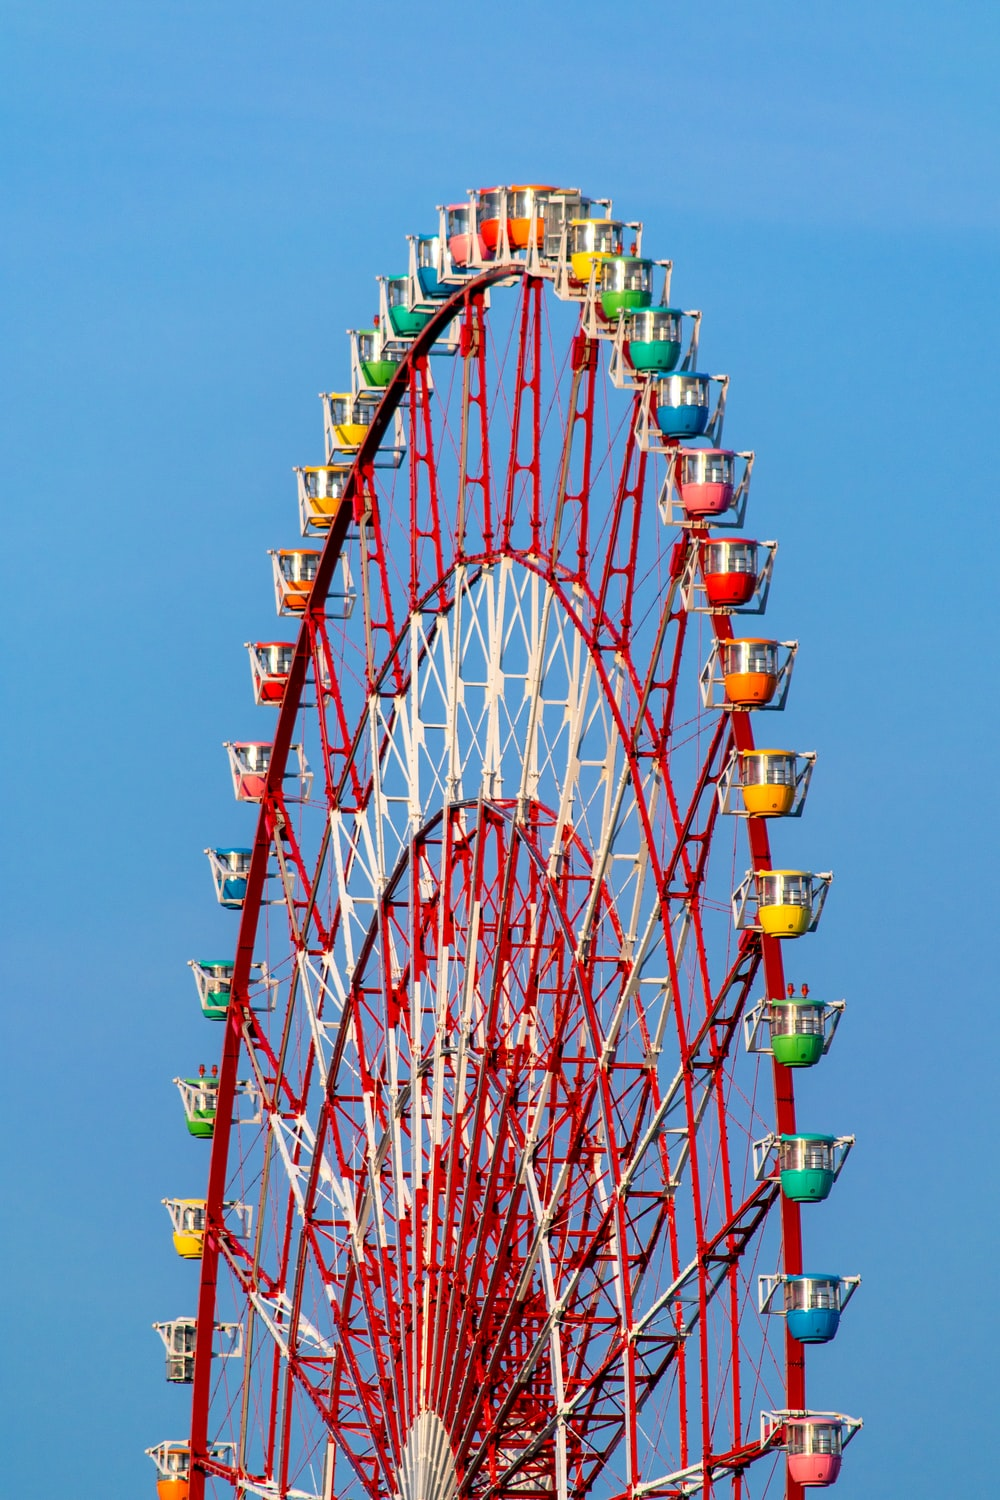 red and yellow ferris wheel under blue sky during daytime